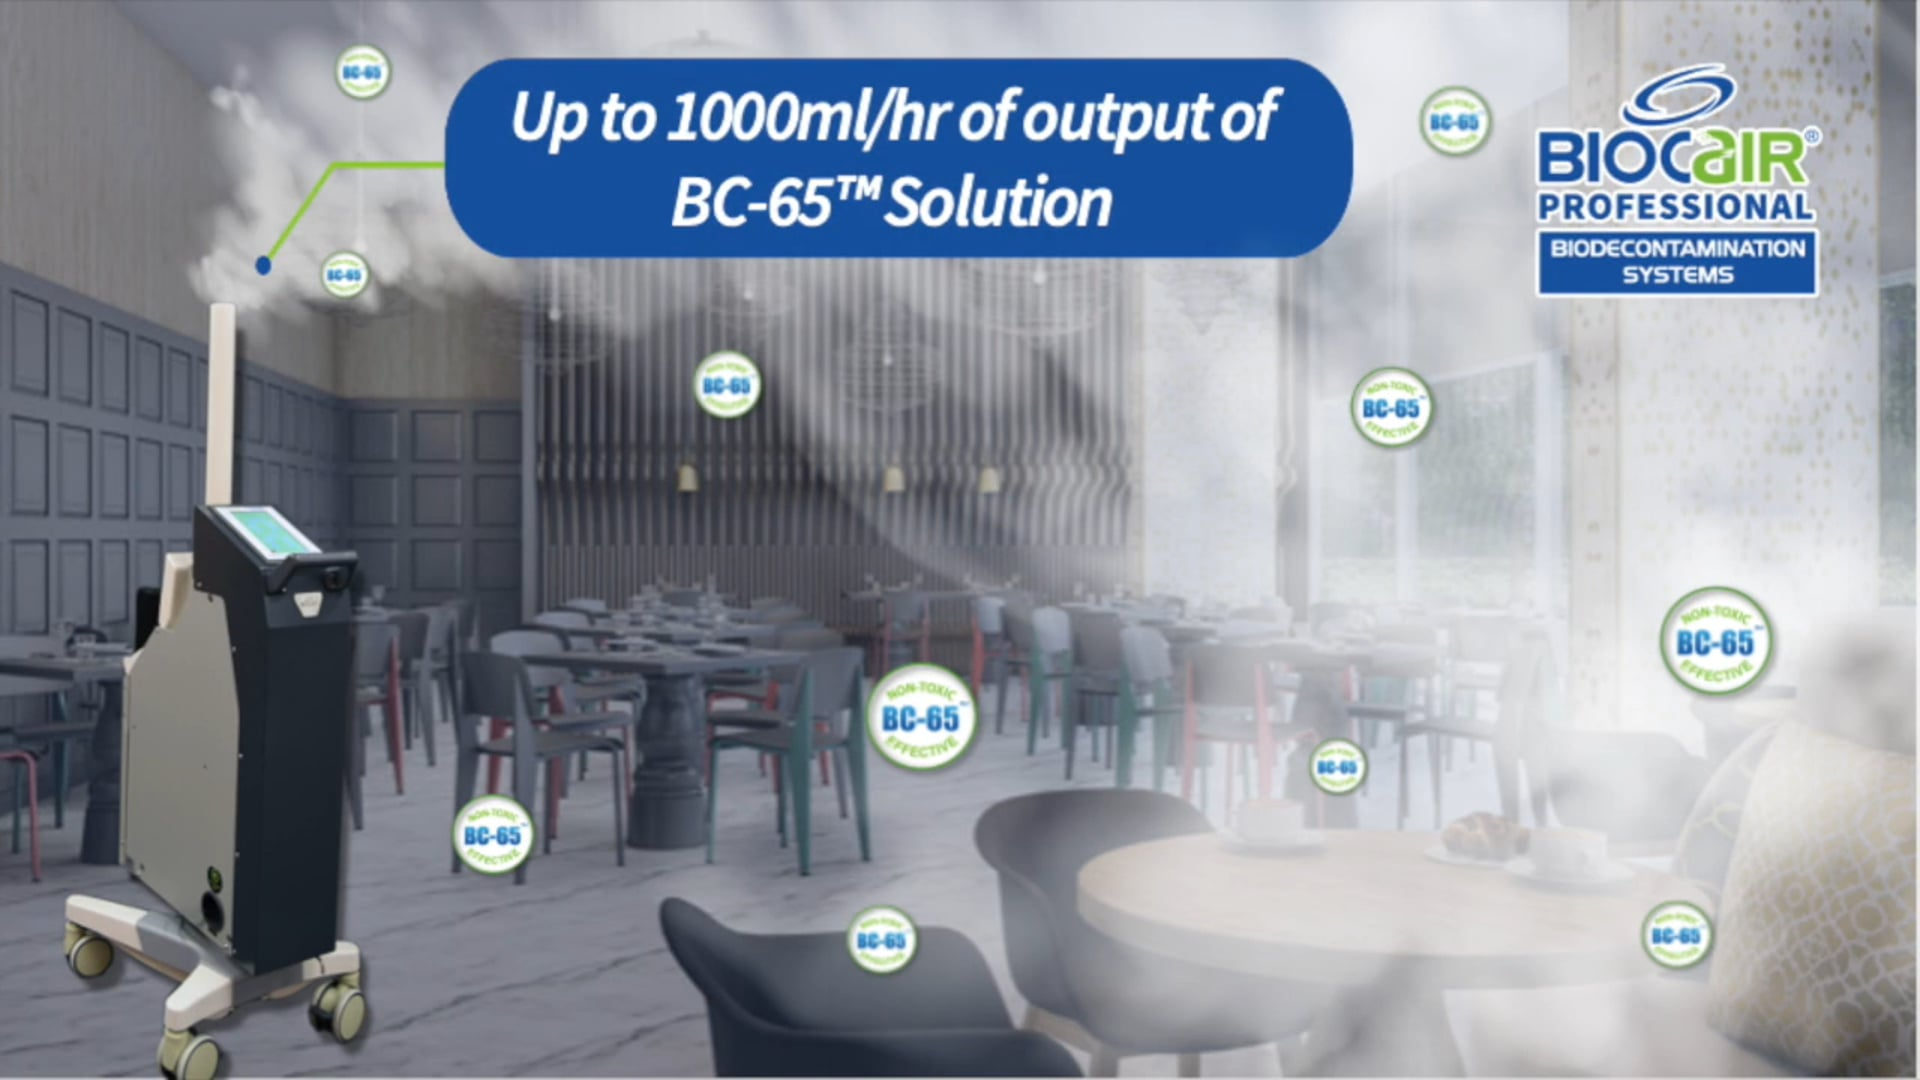 BioCair RADS-1000 Information Video with demonstration